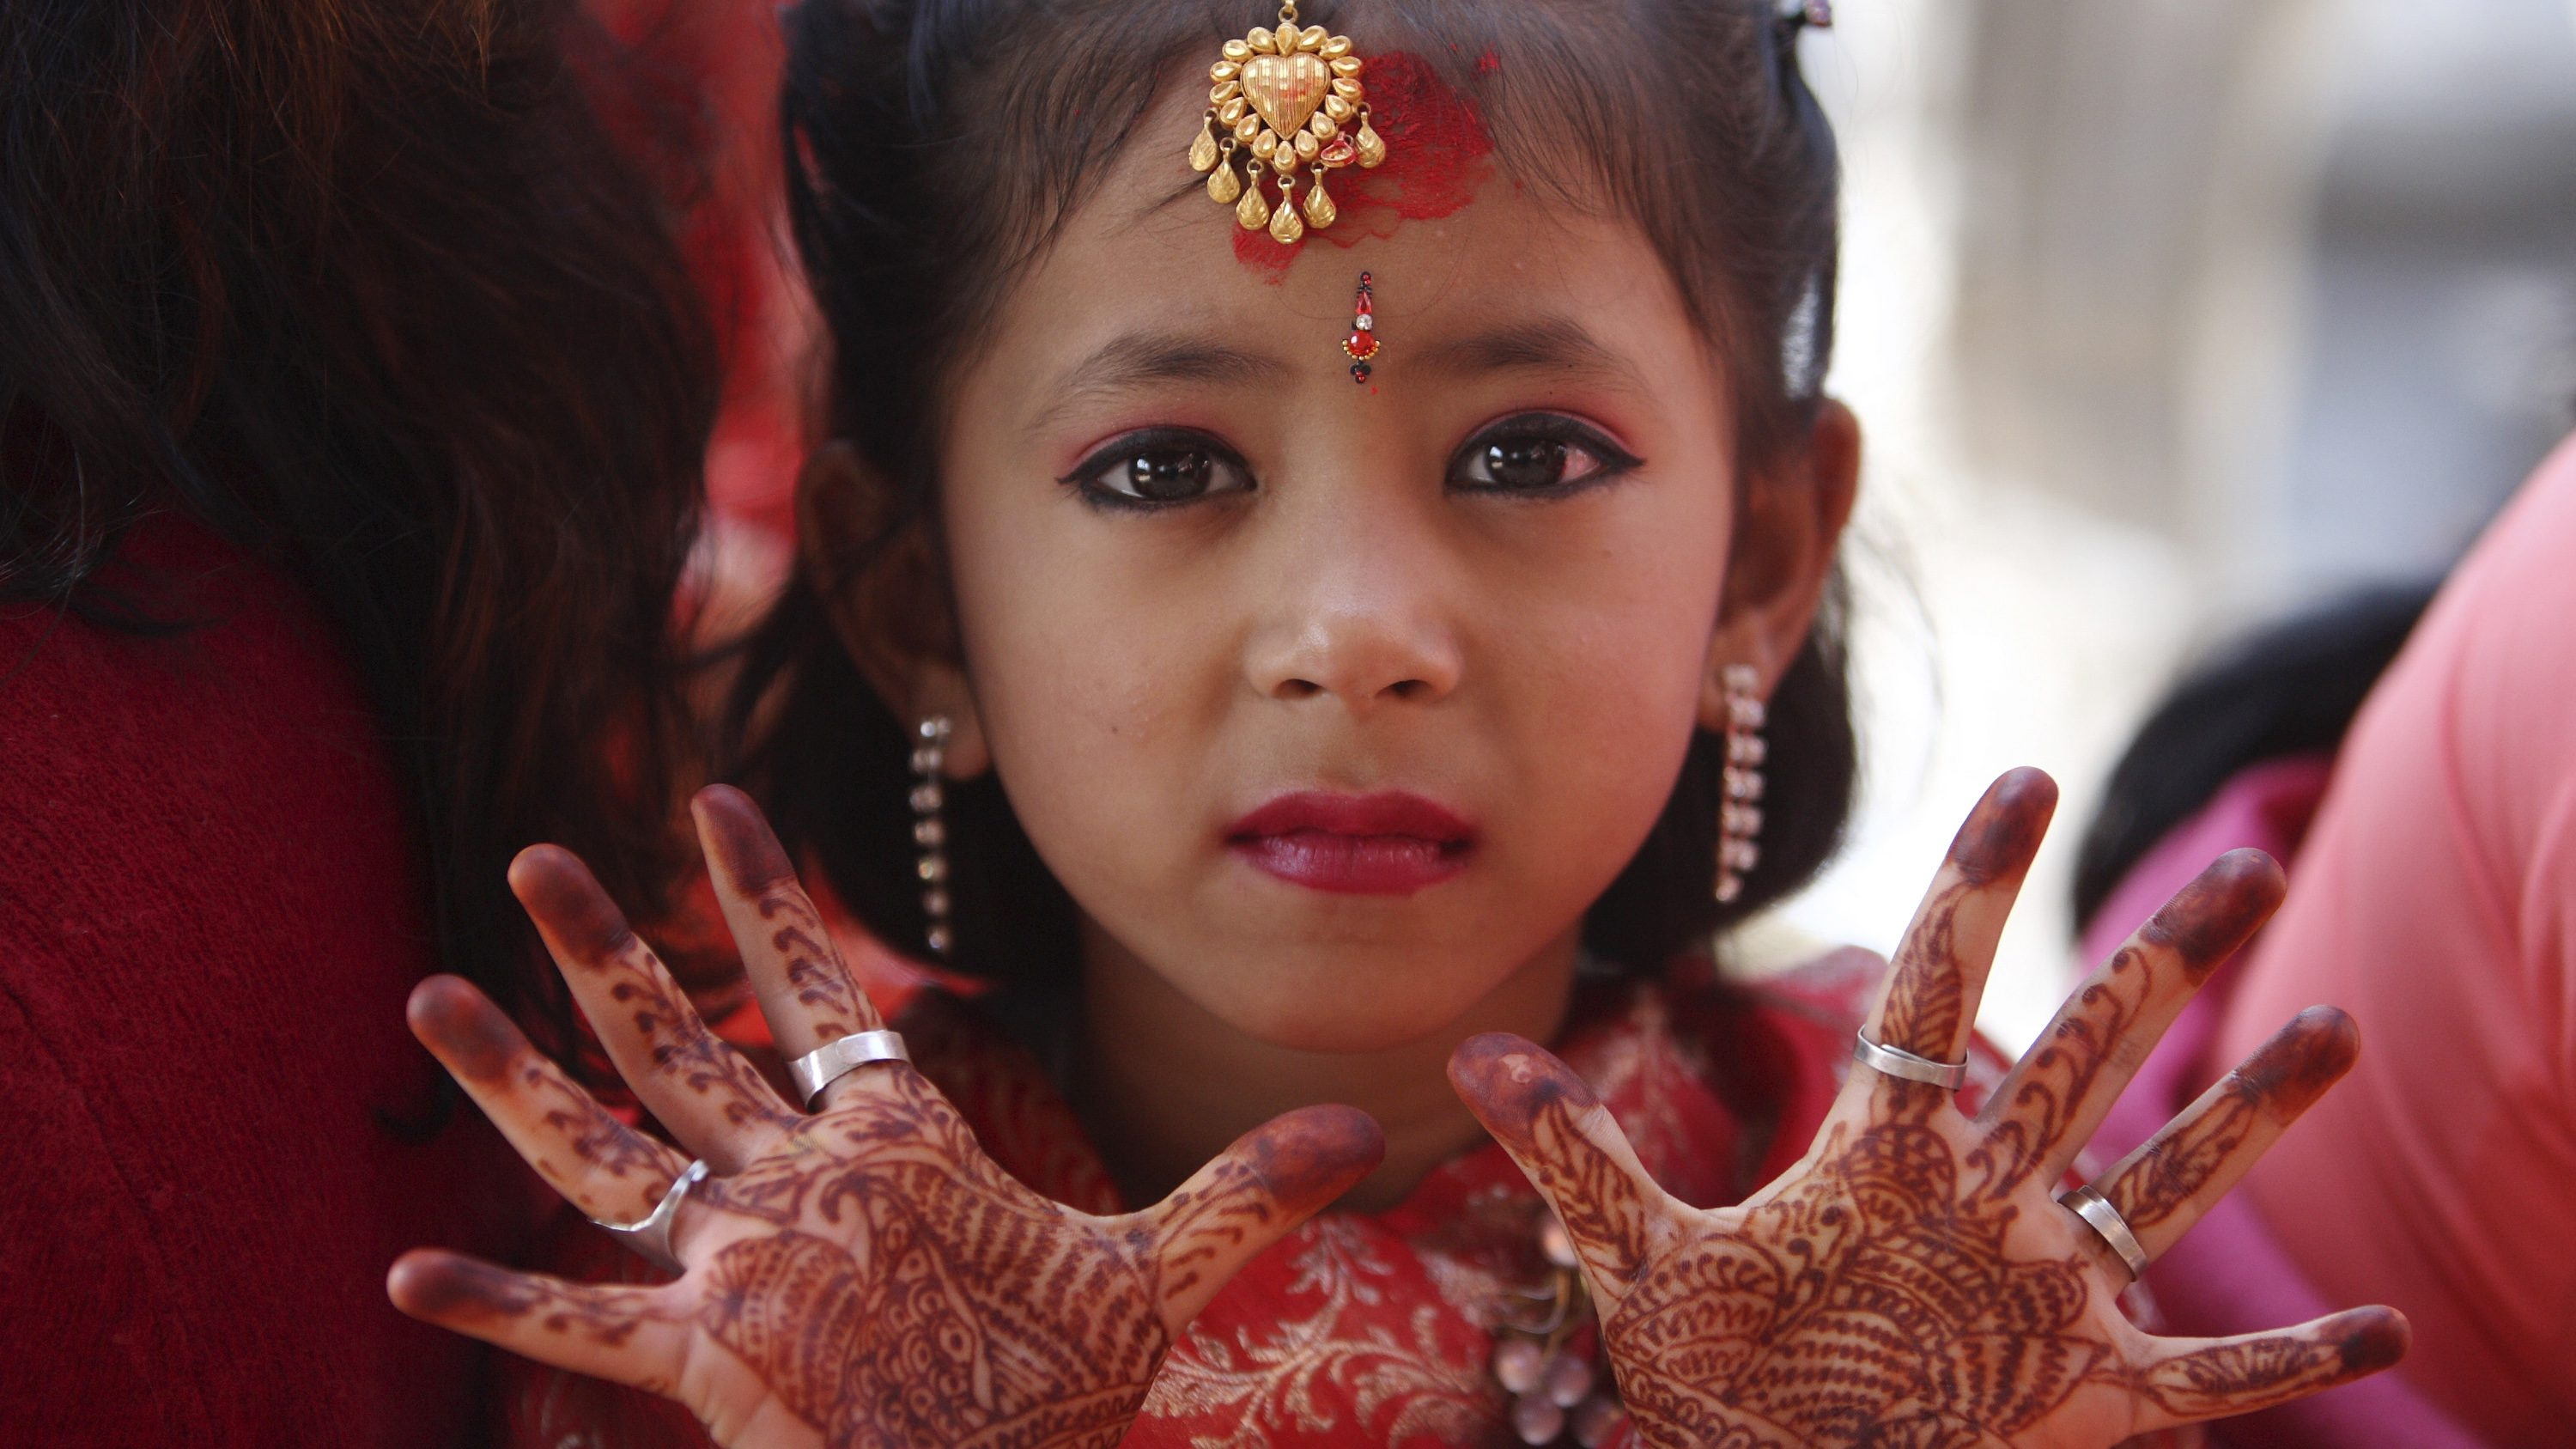 child brides from different countries Countries in latin america and the caribbean have the 5th highest prevalence of child marriage in the world according to the unicef report, 28% of the women polled in this region responded that they were child brides.